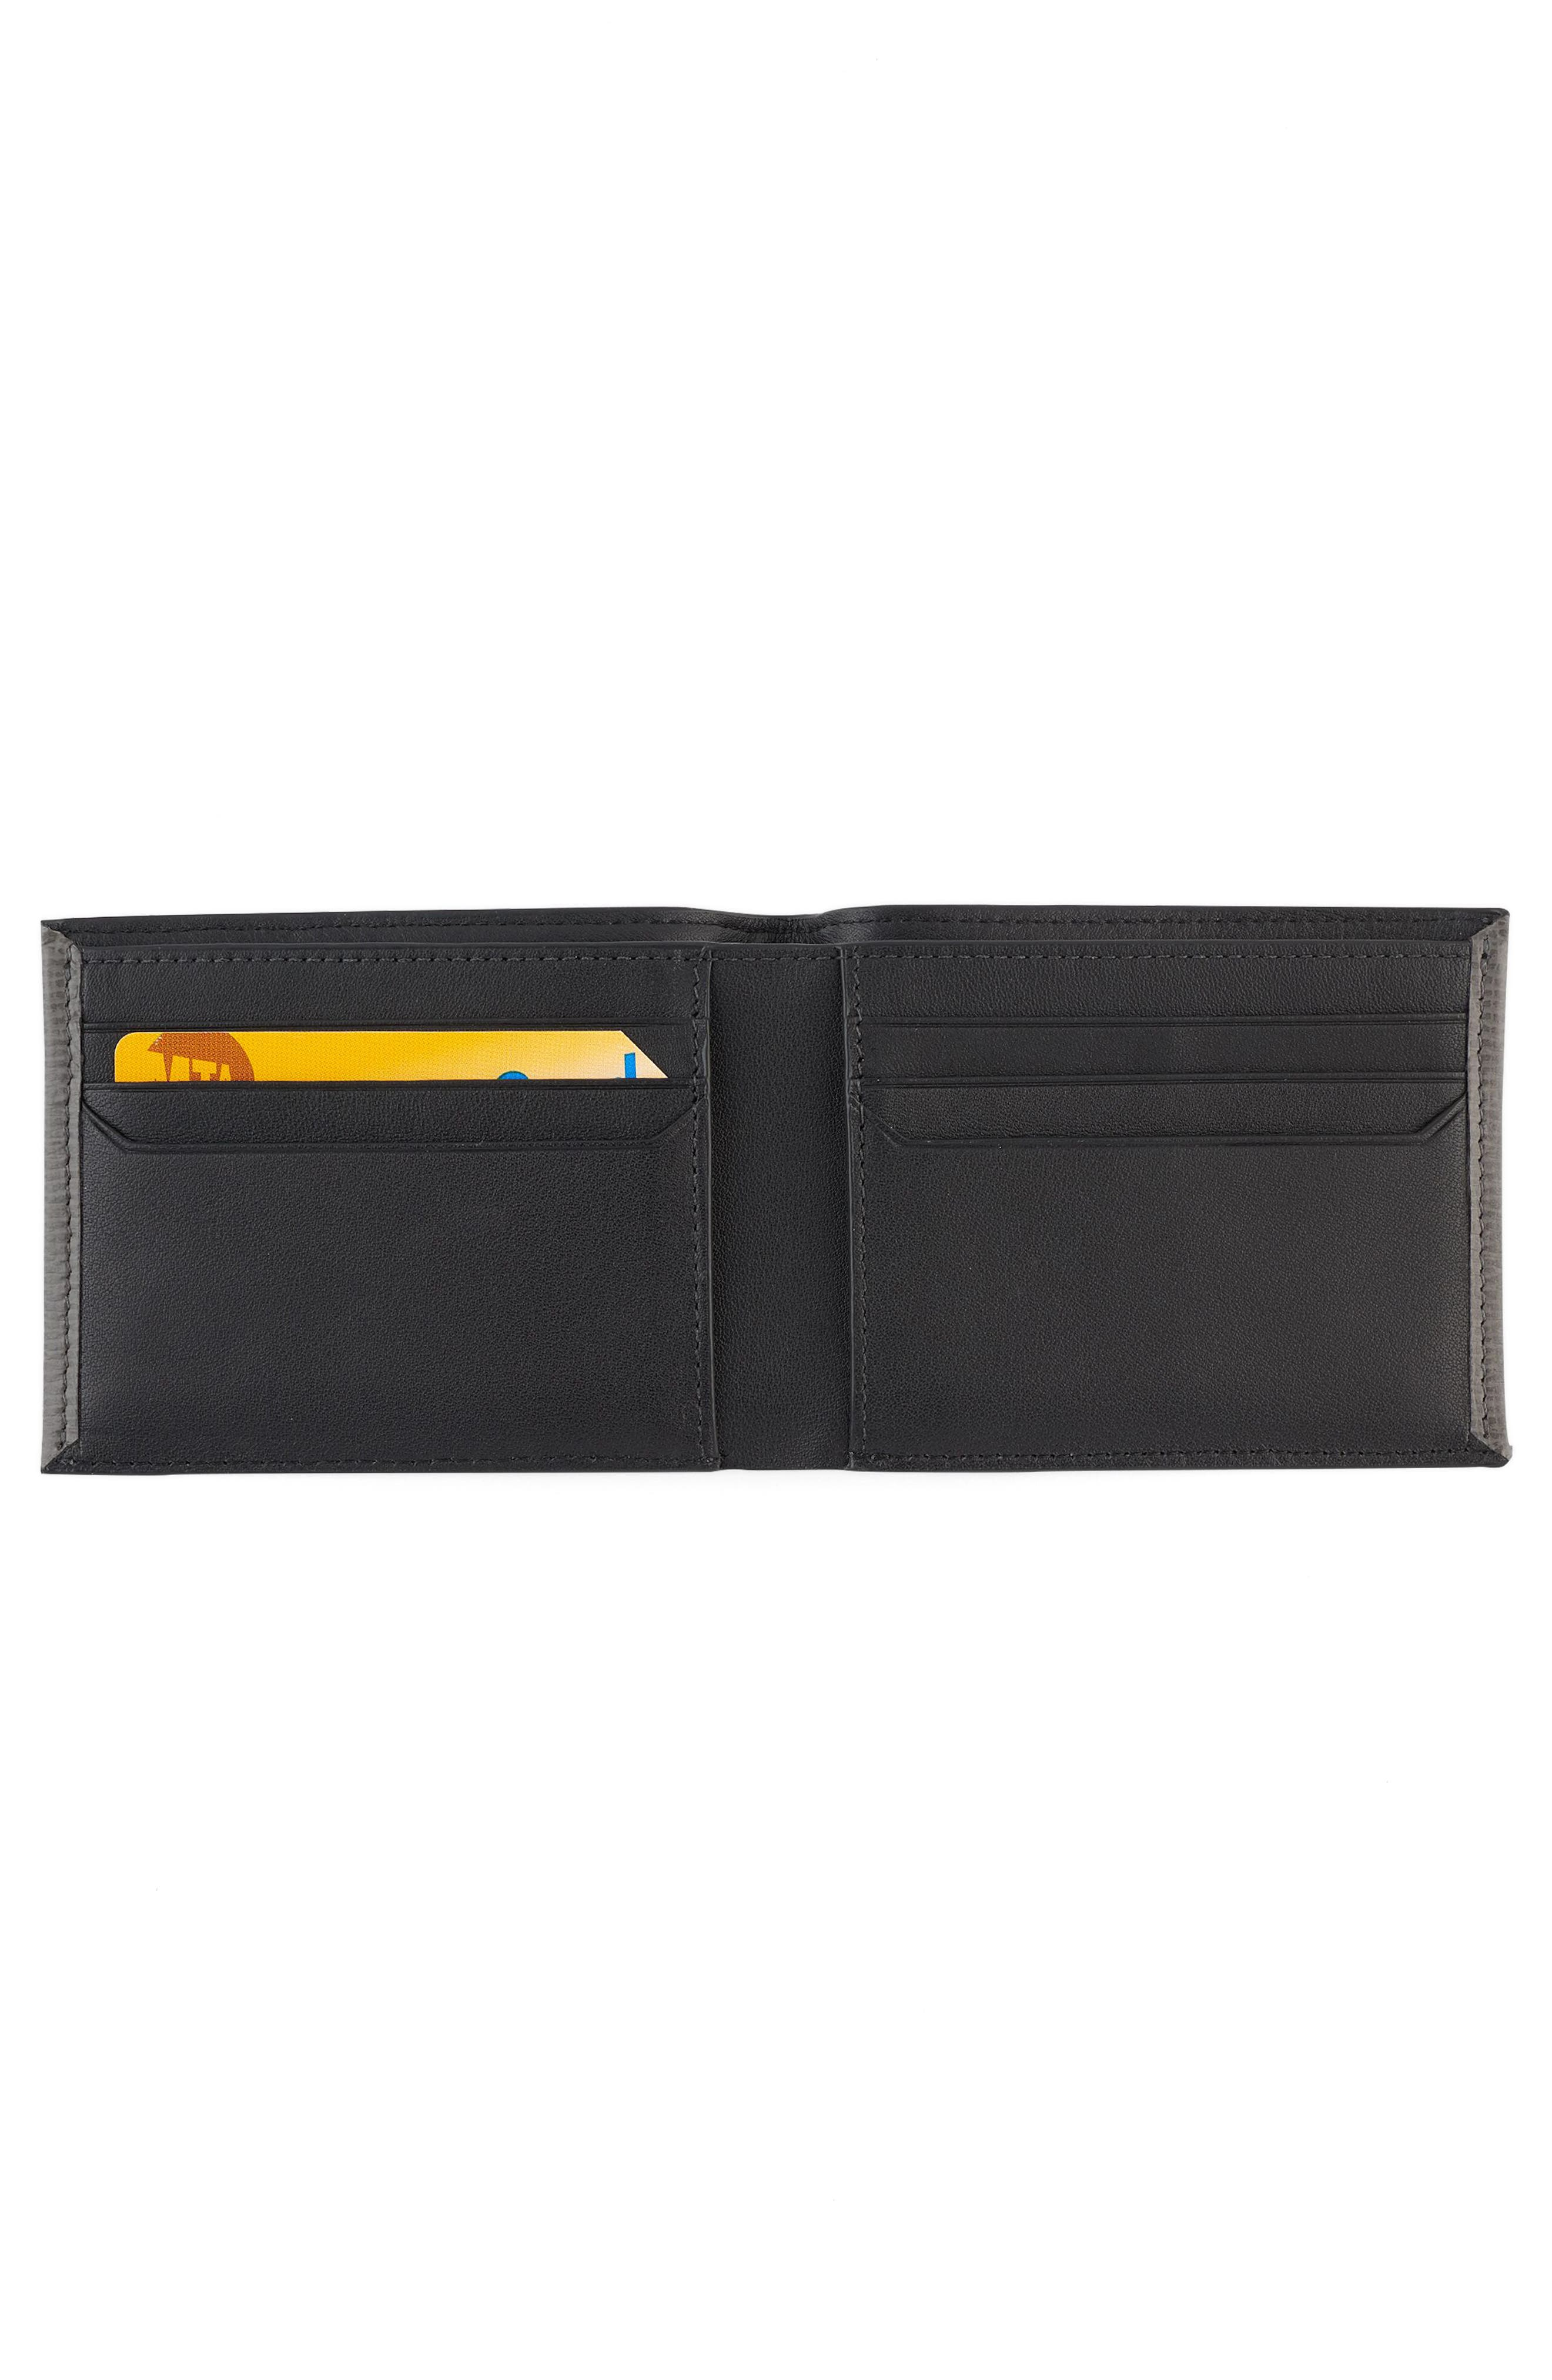 Monaco Leather RFID Wallet,                             Alternate thumbnail 2, color,                             020